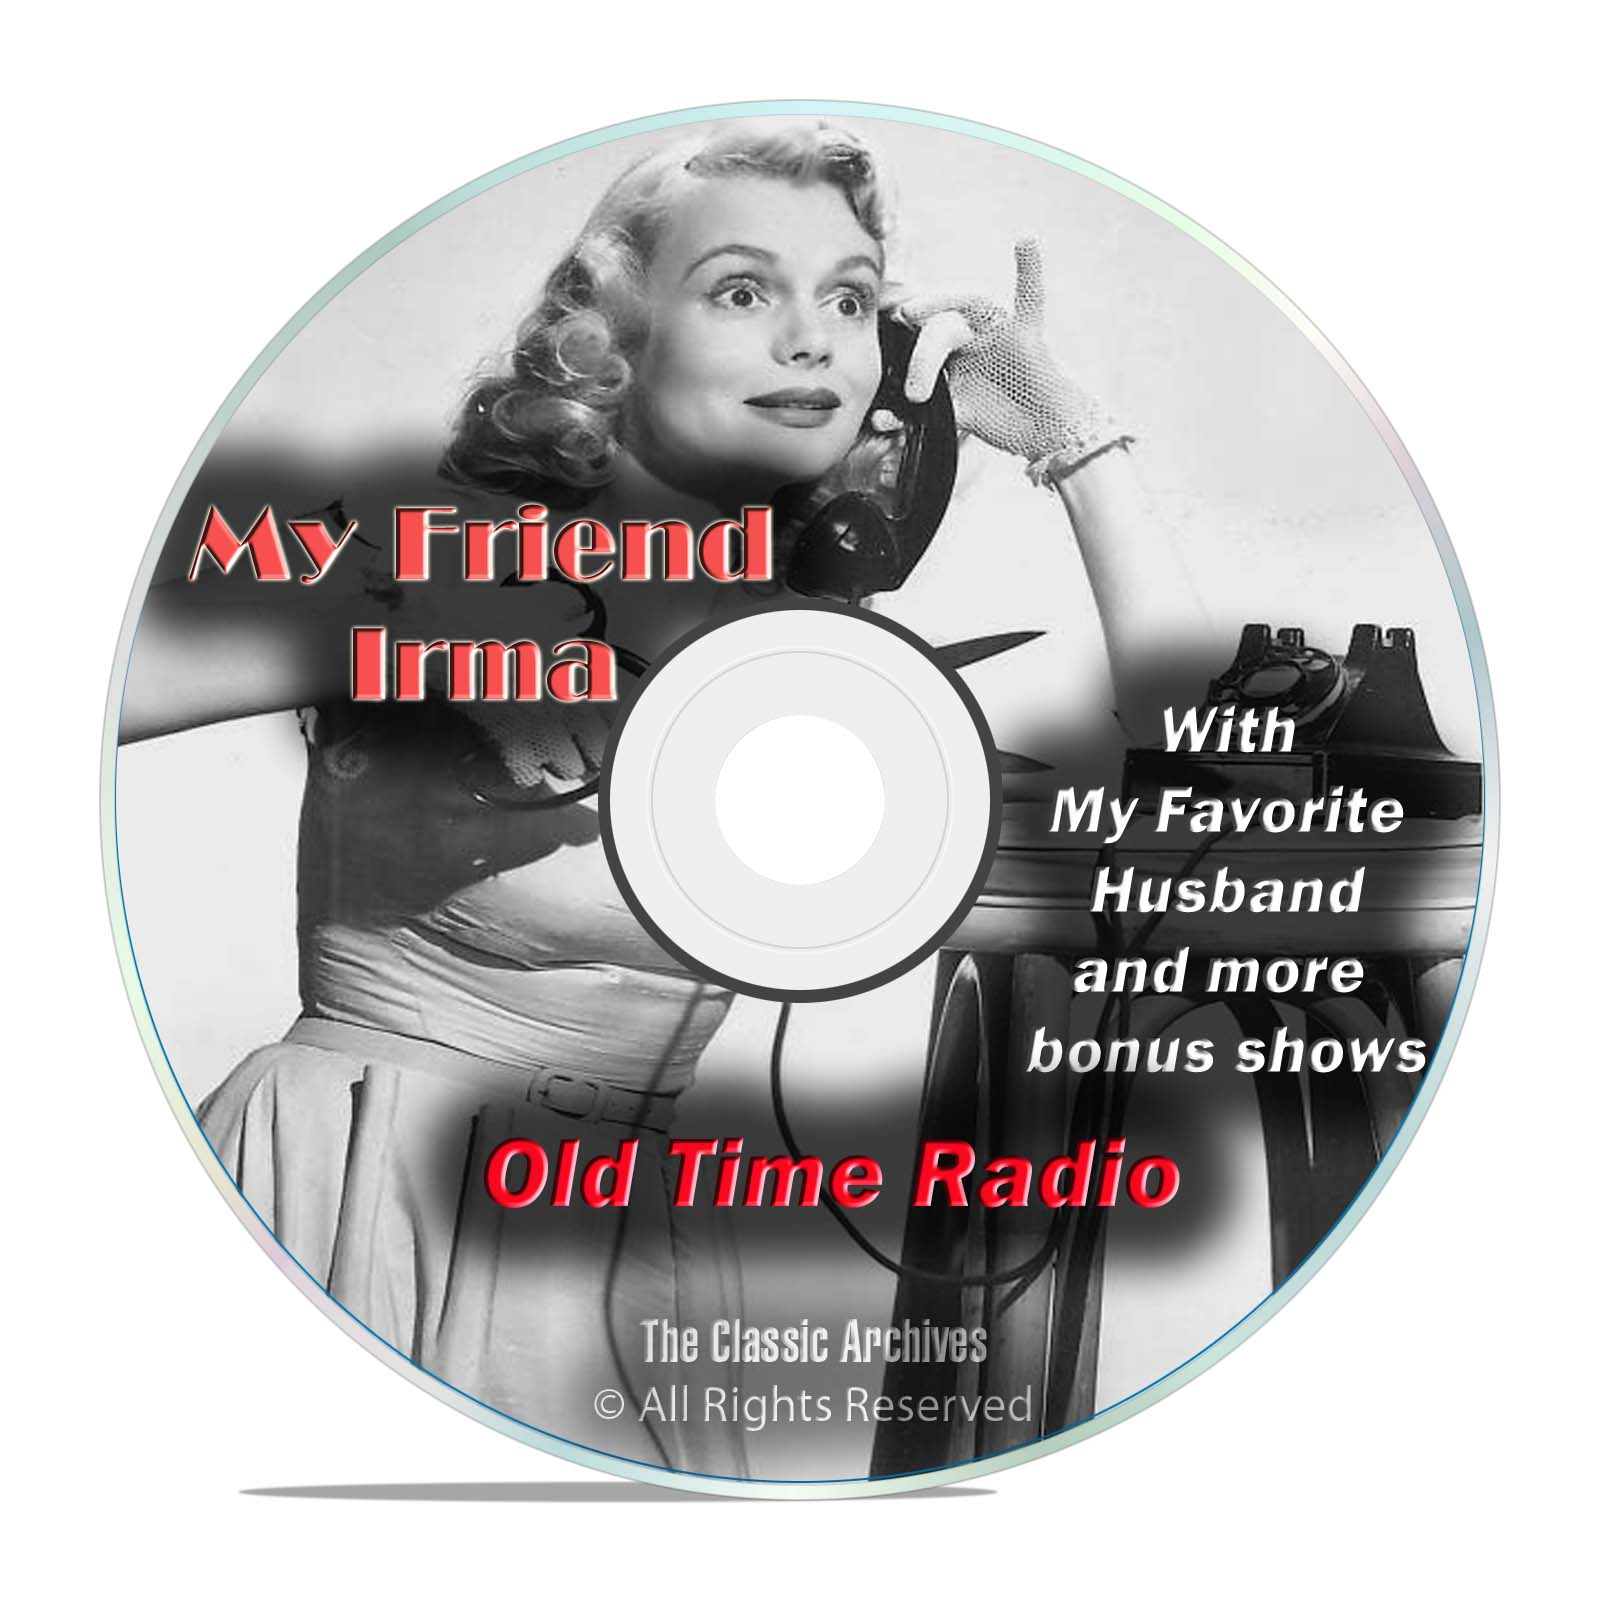 My Friend Irma, + My Favorite Husband, 596 Old Time Radio Shows, OTR, DVD - Click Image to Close